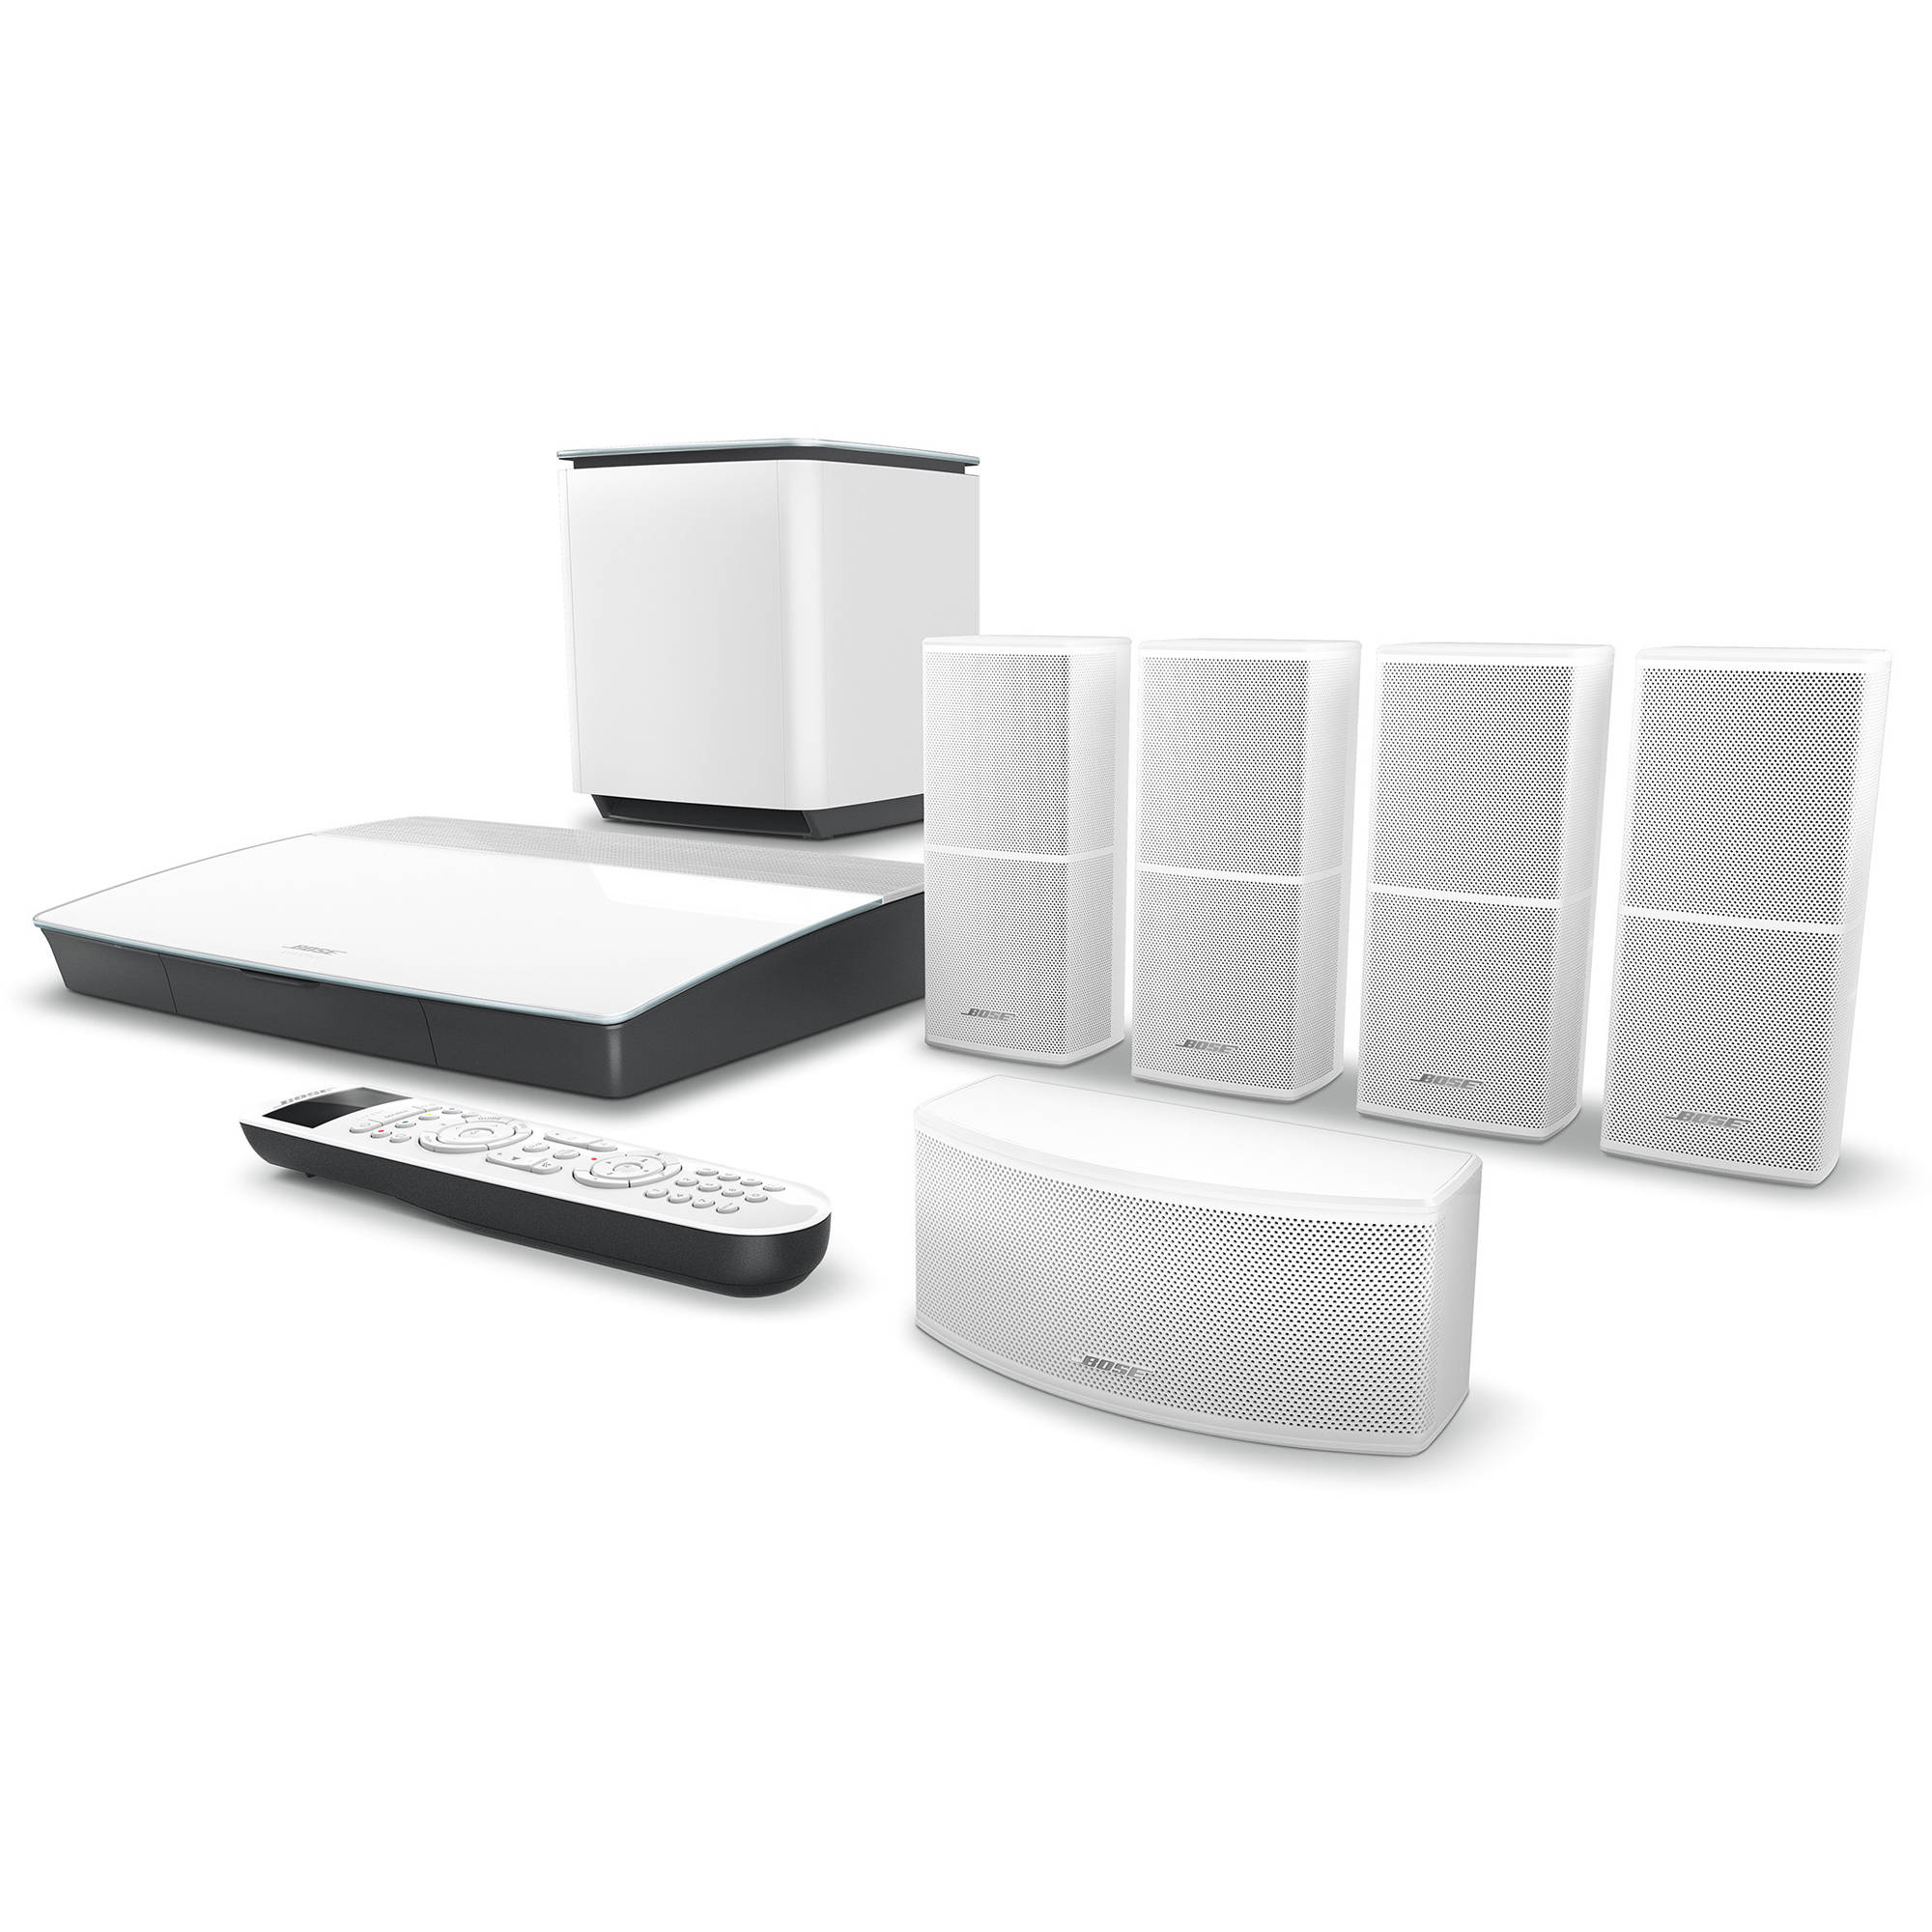 hight resolution of bose lifestyle 600 home theater system with jewel cube speakers white